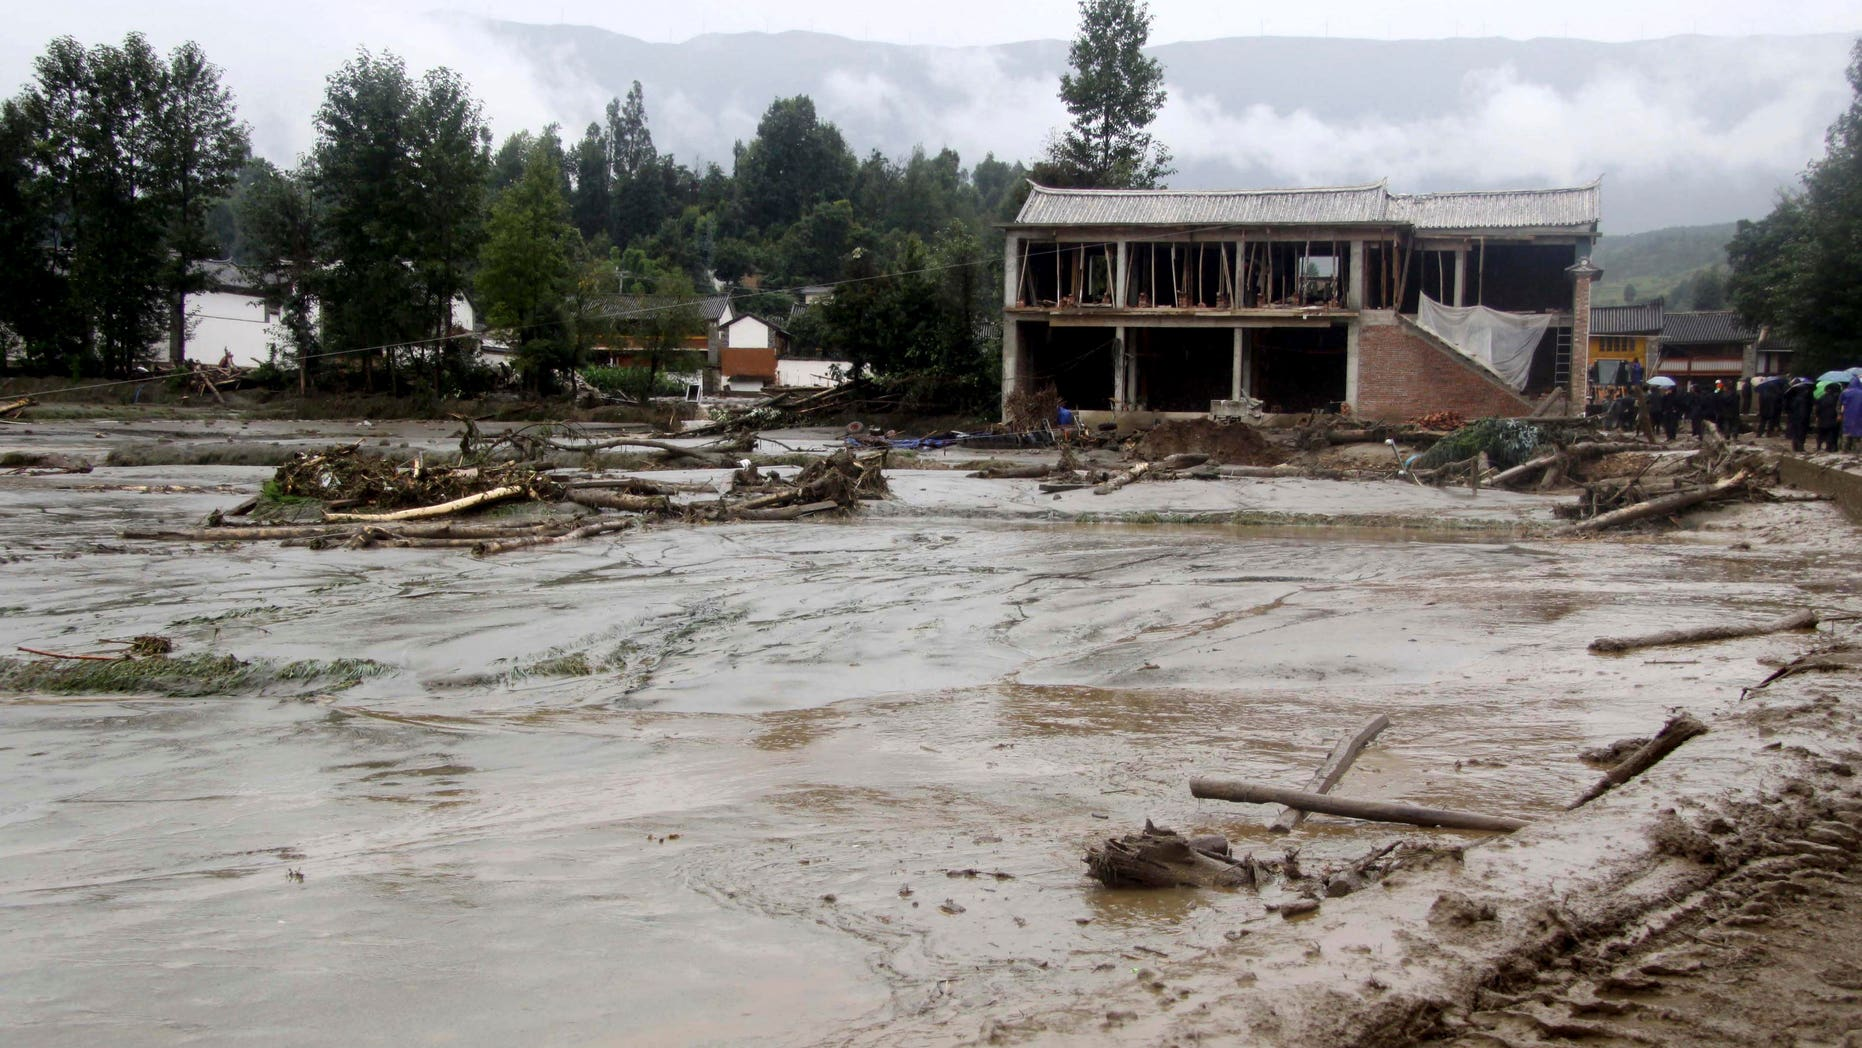 Aug. 6, 2012: In this photo released by China's Xinhua News Agency, mud covers the area after a mudslide in Tiejia Village of Eryuan County of Dali Bai Autonomous Prefecture, southwest China's Yunnan Province.